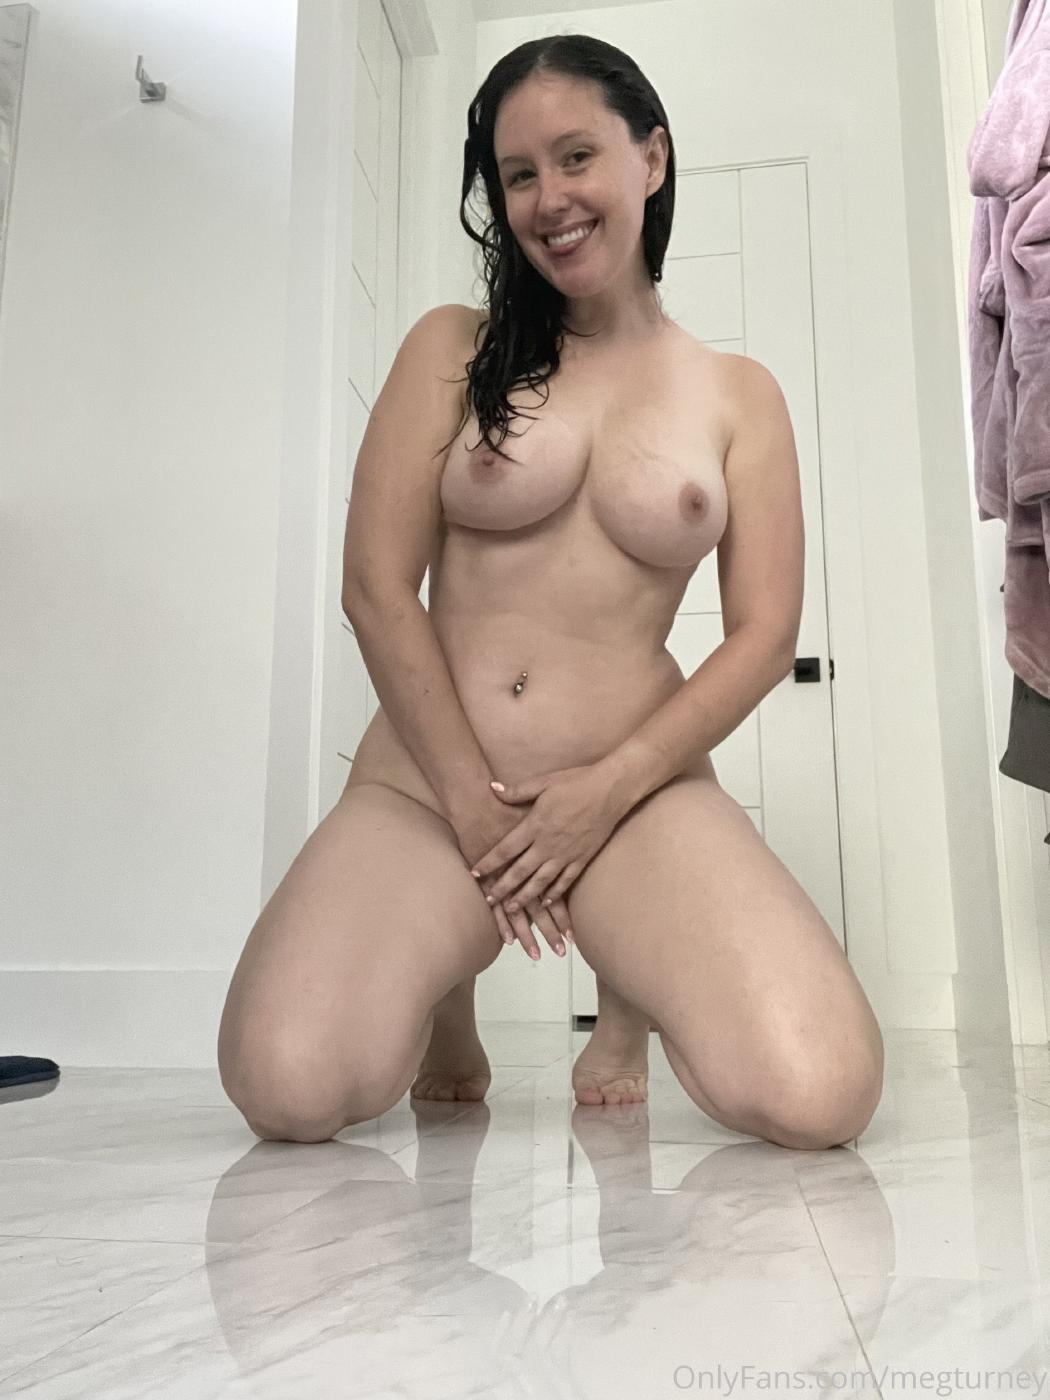 Pussy leaked Only Fans